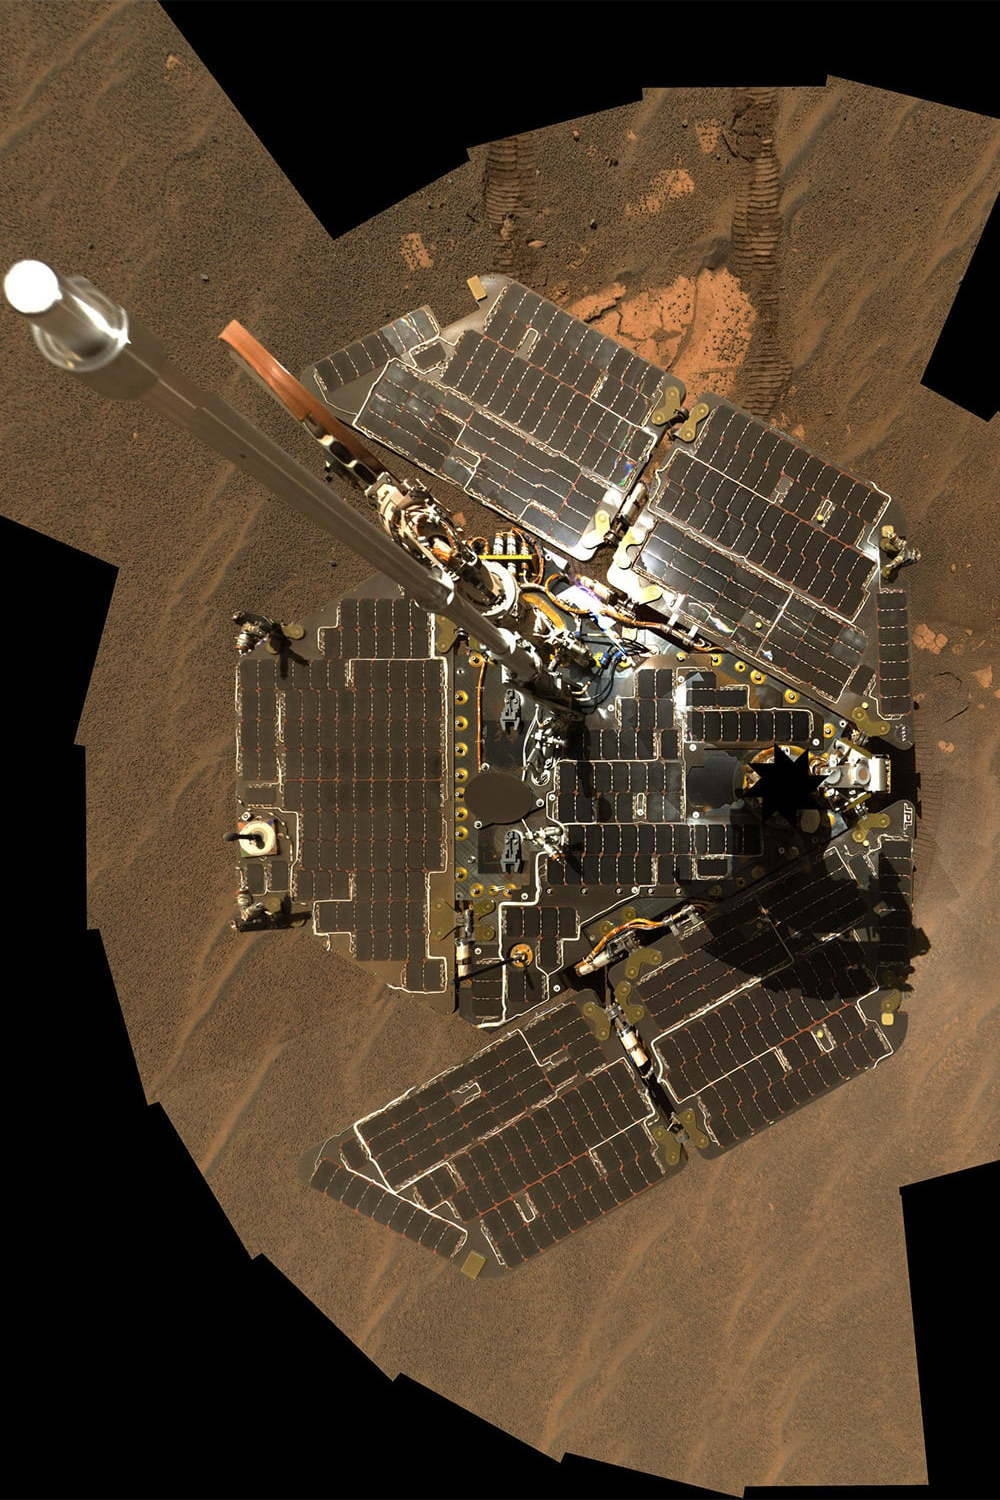 Opportunity photographs its solar panels